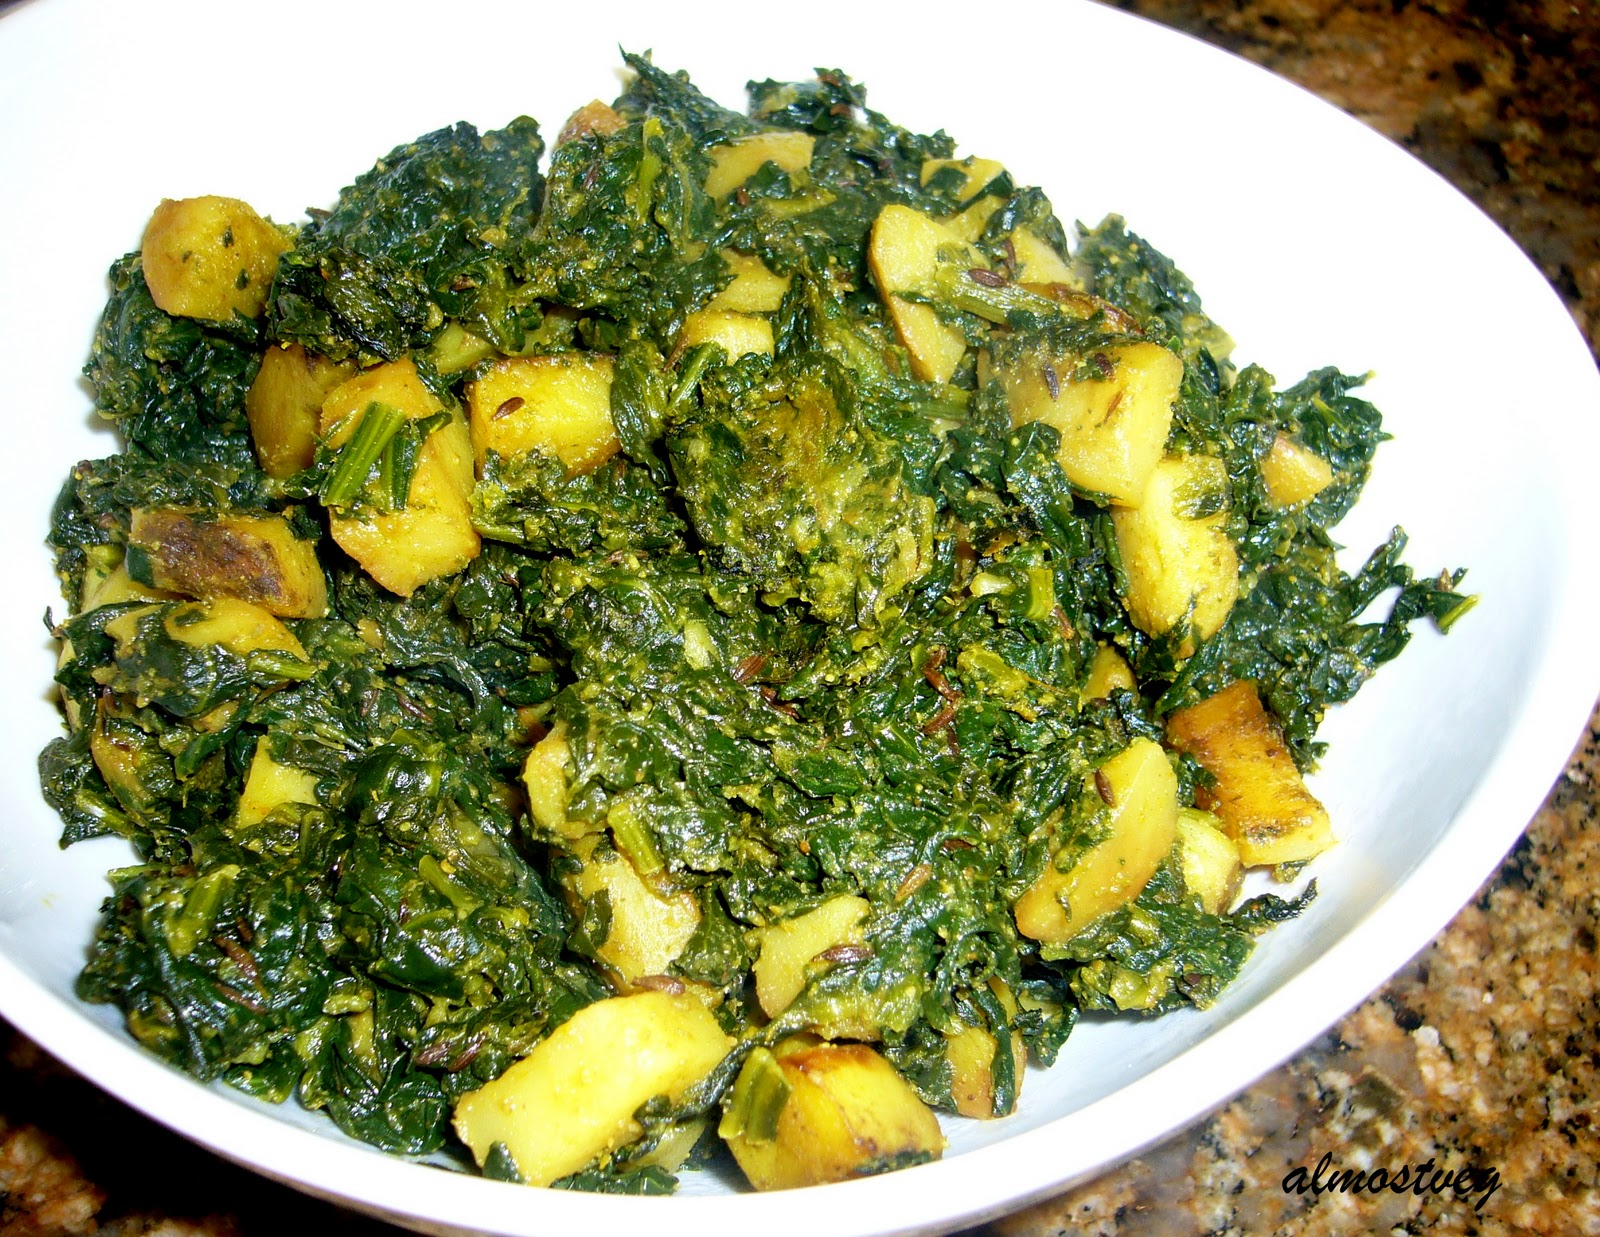 Stir fried spinach and potatoes with mild spices